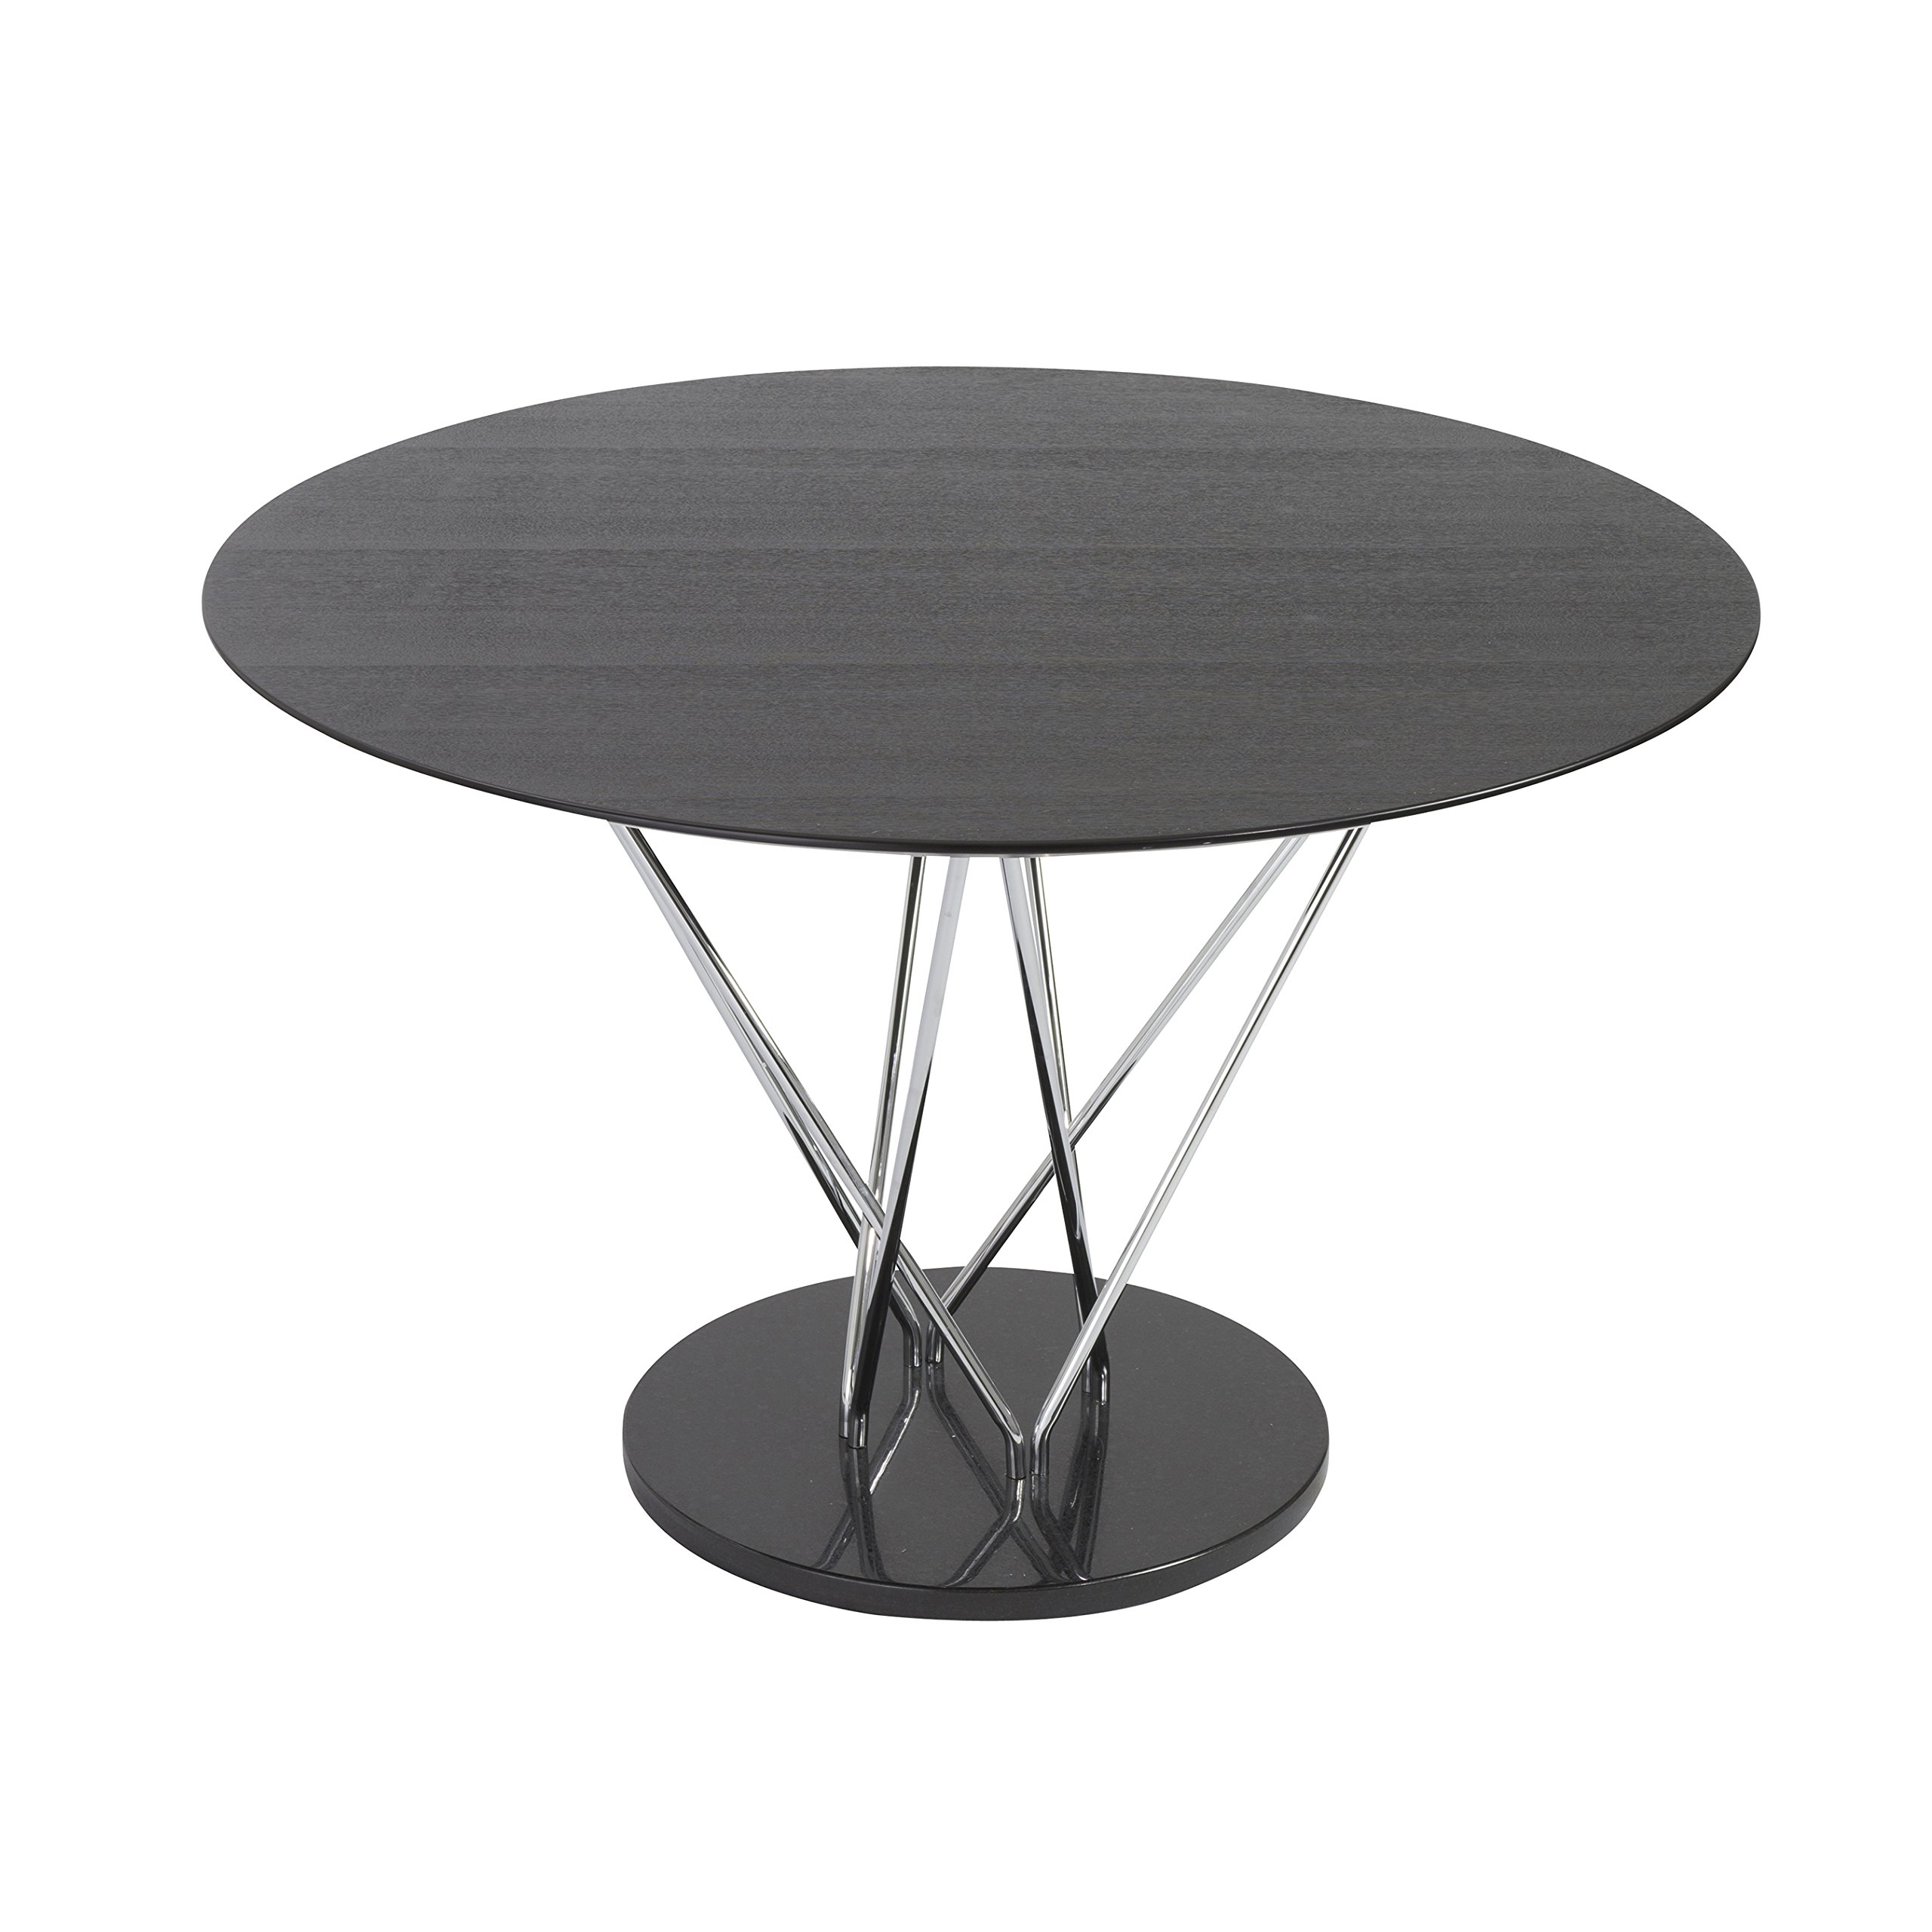 47'' Round Ebony and Steel Meeting Table by eS (Image #3)